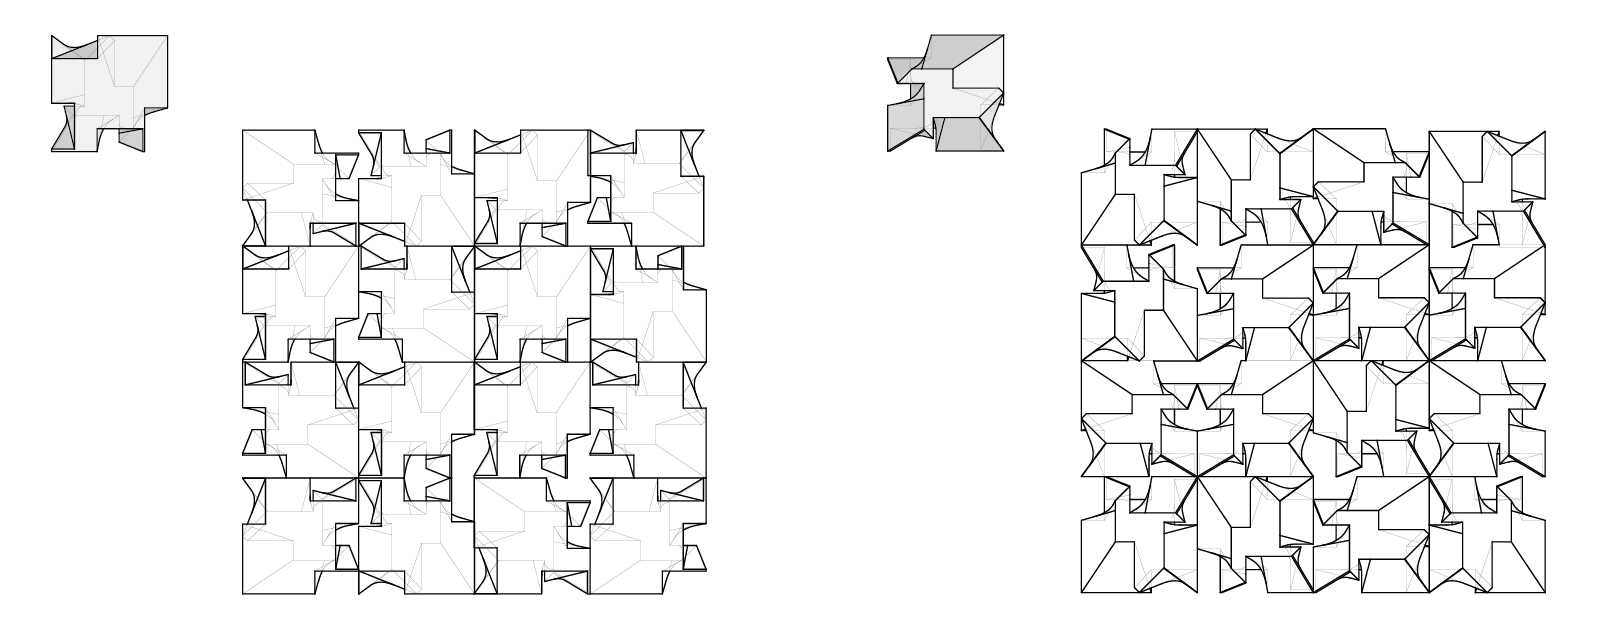 Top and bottom views of 3D grids consisting of two lofted triangle-based cutout forms (first row) and two lofted square-based cutout forms (second row)